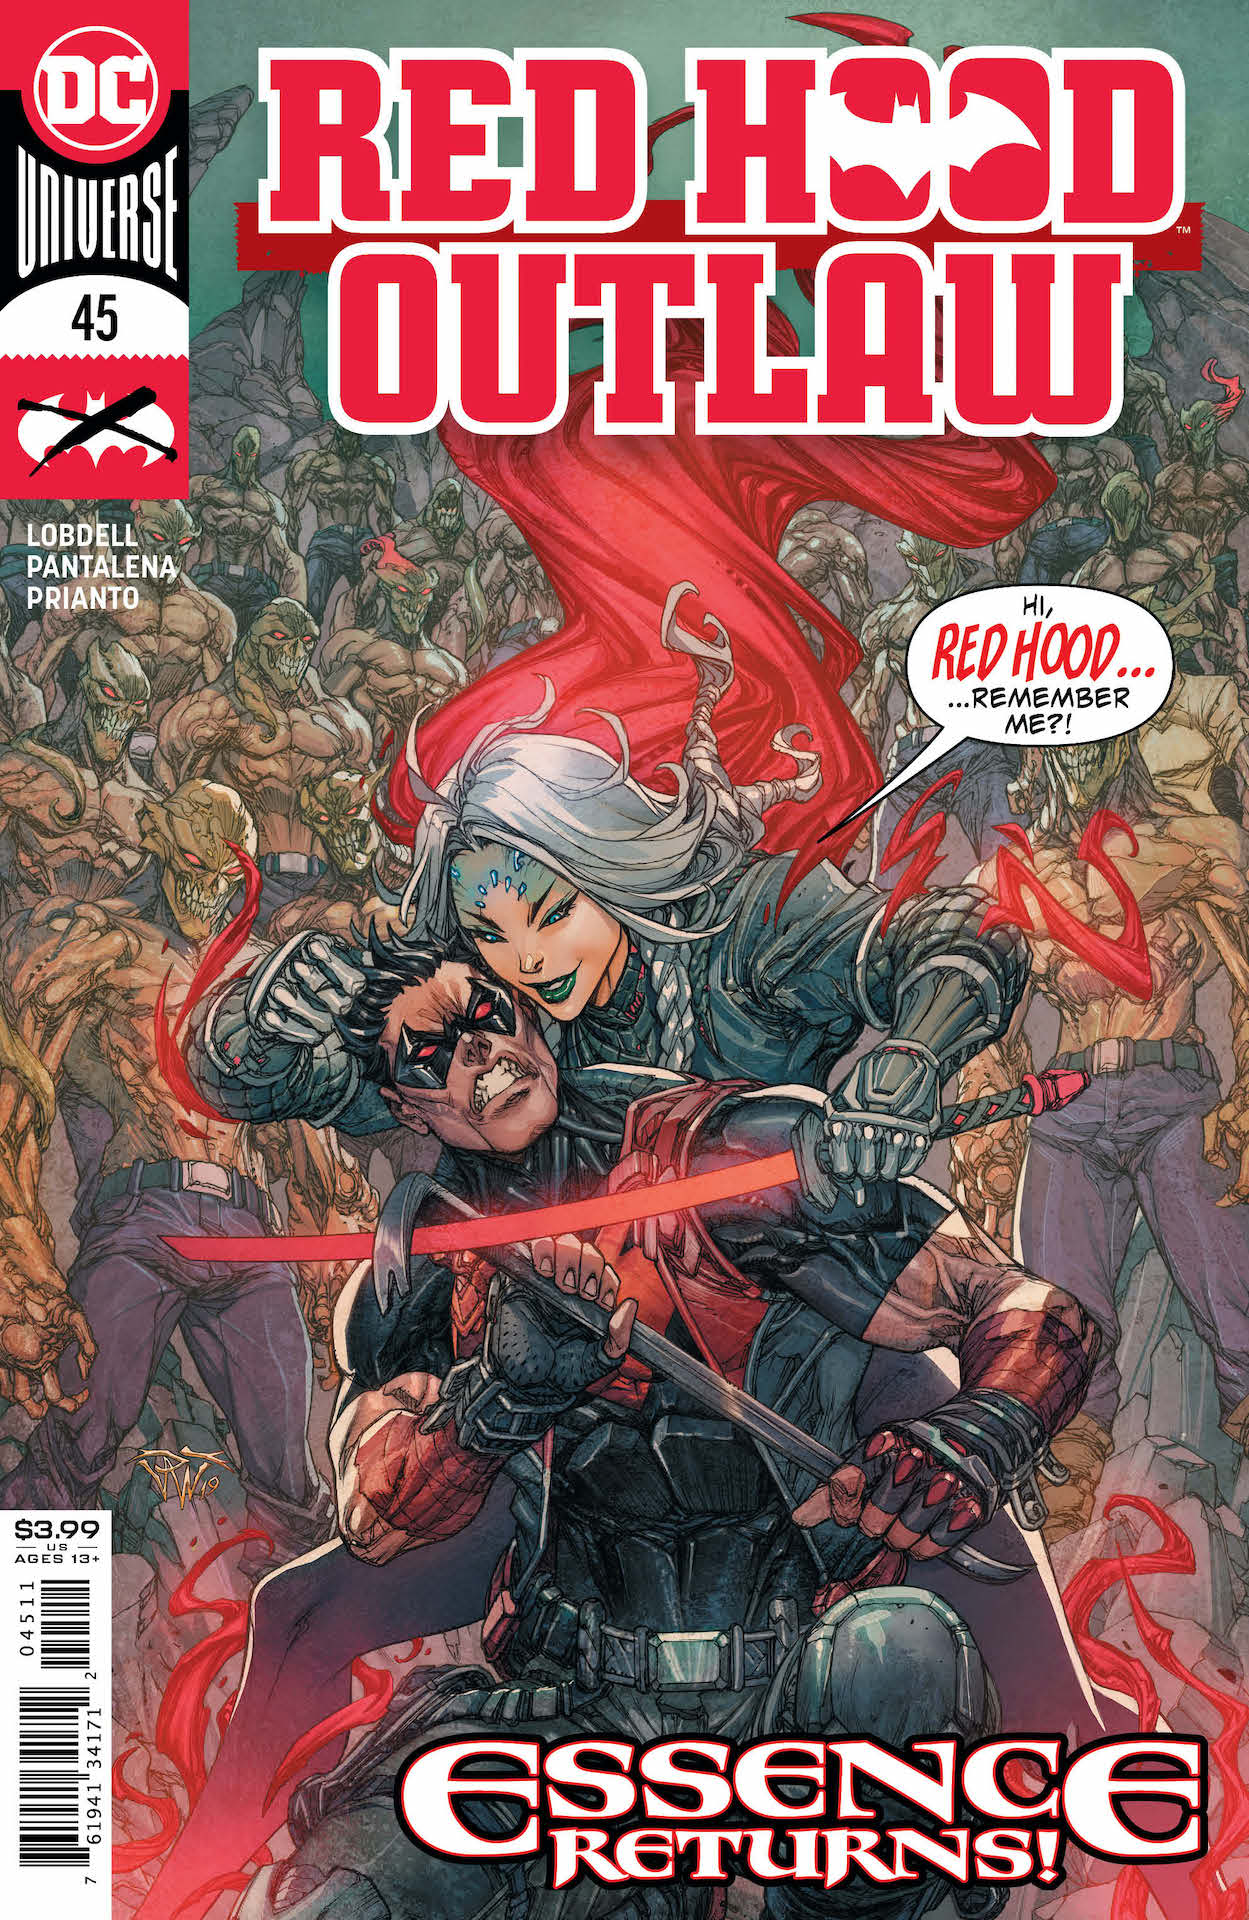 DC Preview: Red Hood: Outlaw #45